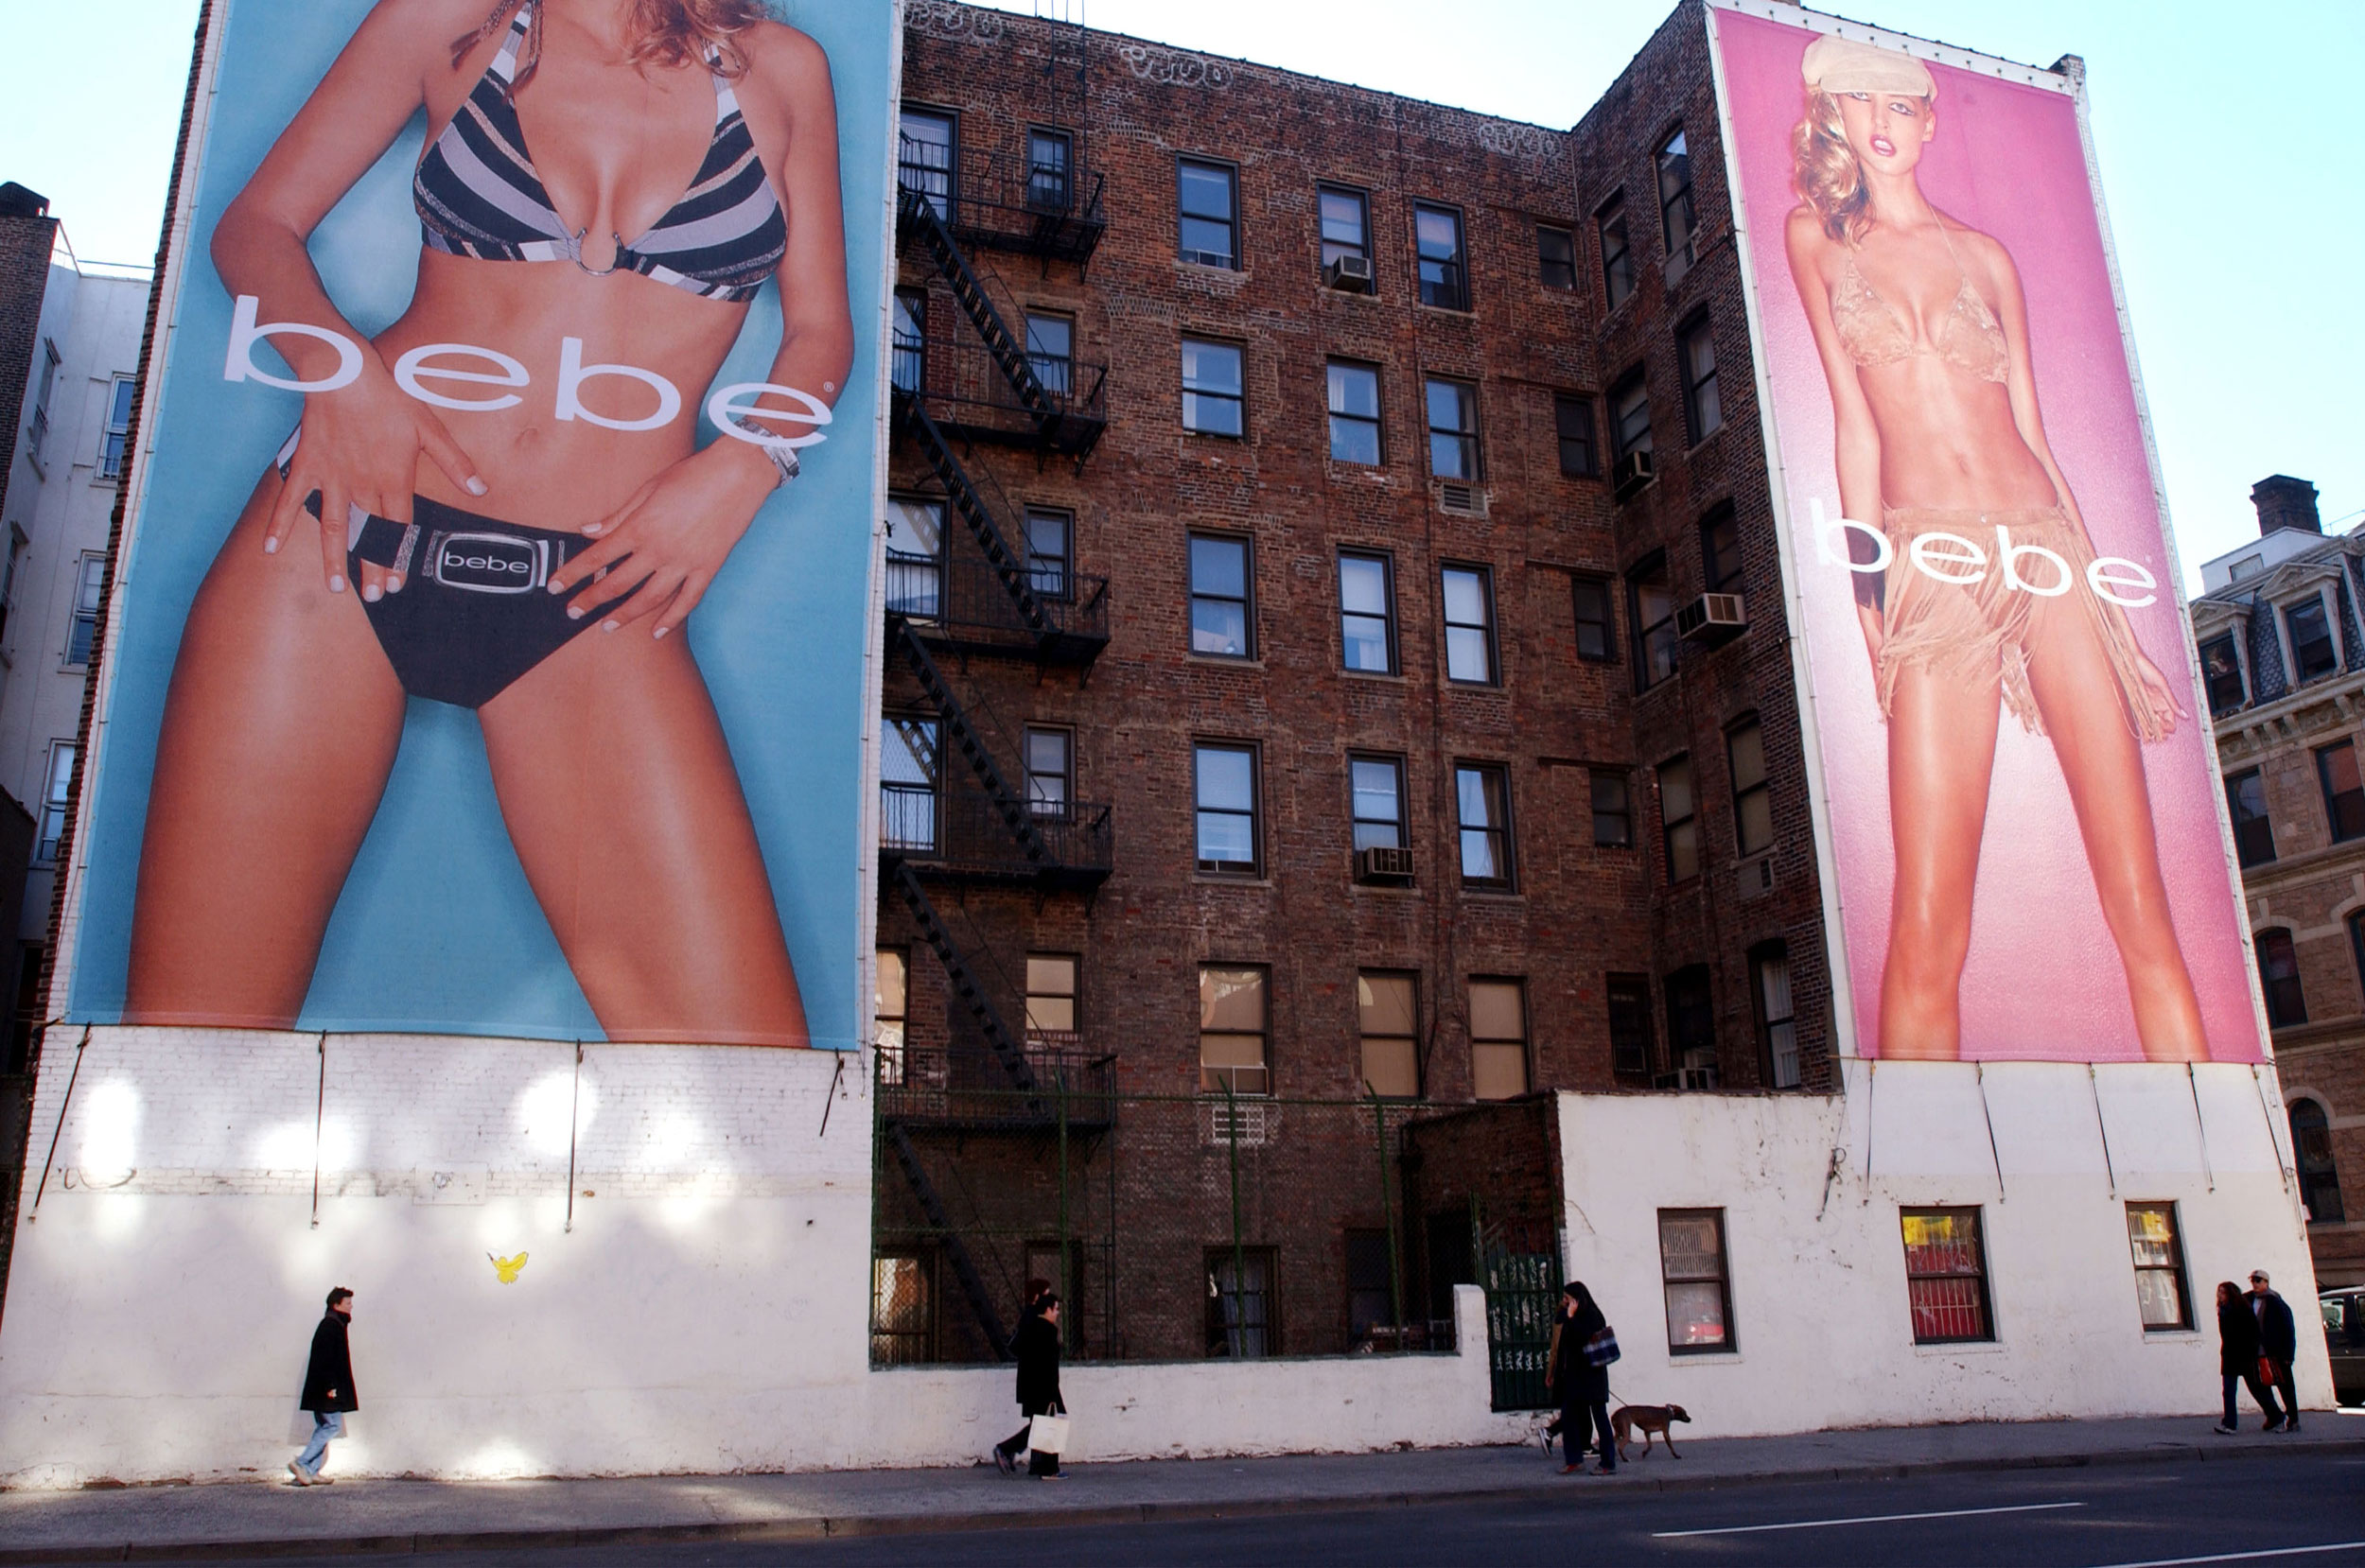 sex sells sexuality in advertising essay